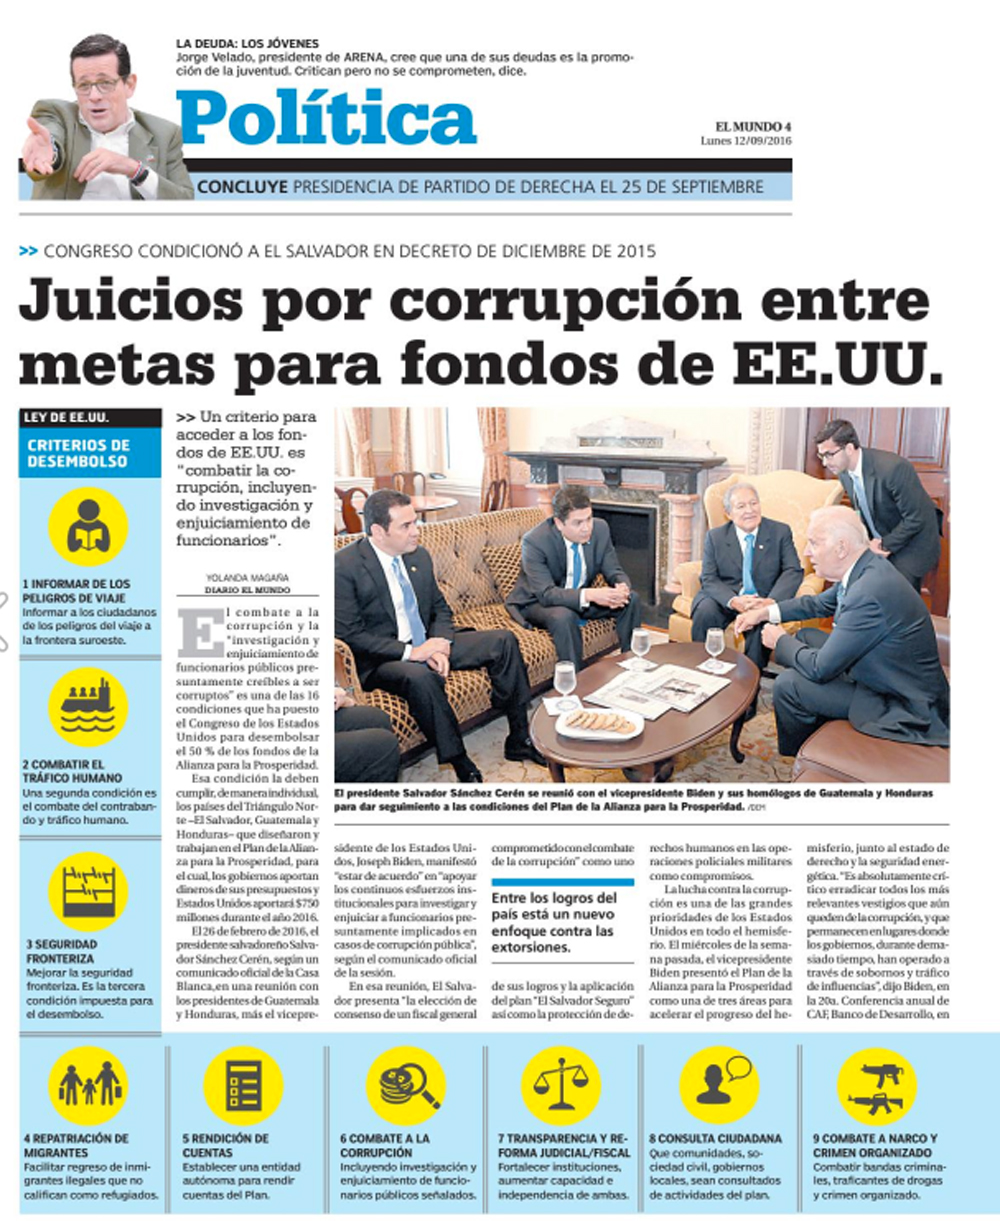 juicios-por-corrupcion